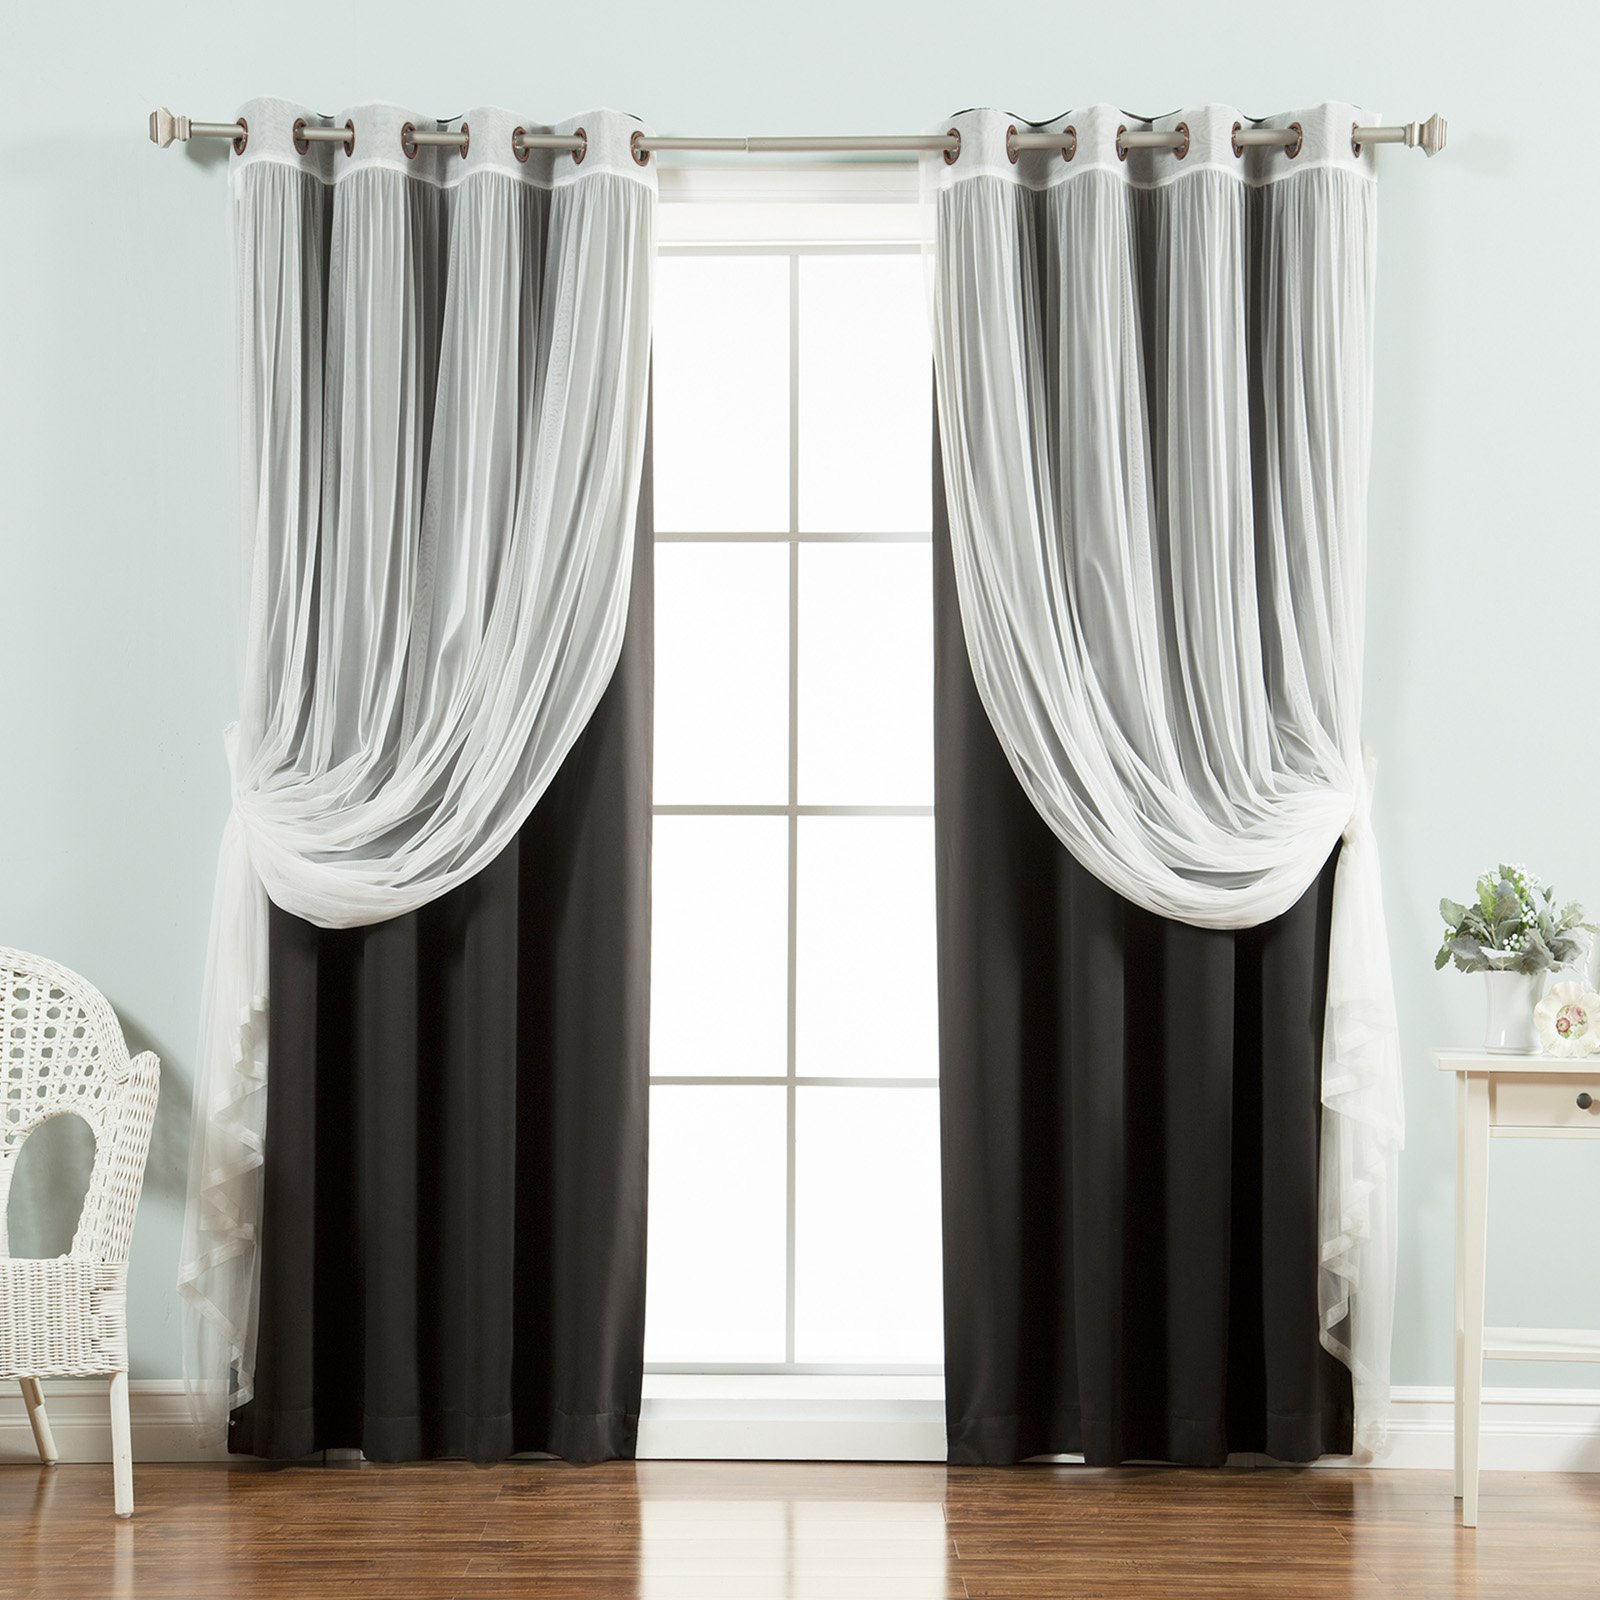 Best Home Fashion Mix & Match Tulle Sheer Lace Blackout Pertaining To Most Popular Mix And Match Blackout Tulle Lace Sheer Curtain Panel Sets (View 20 of 20)